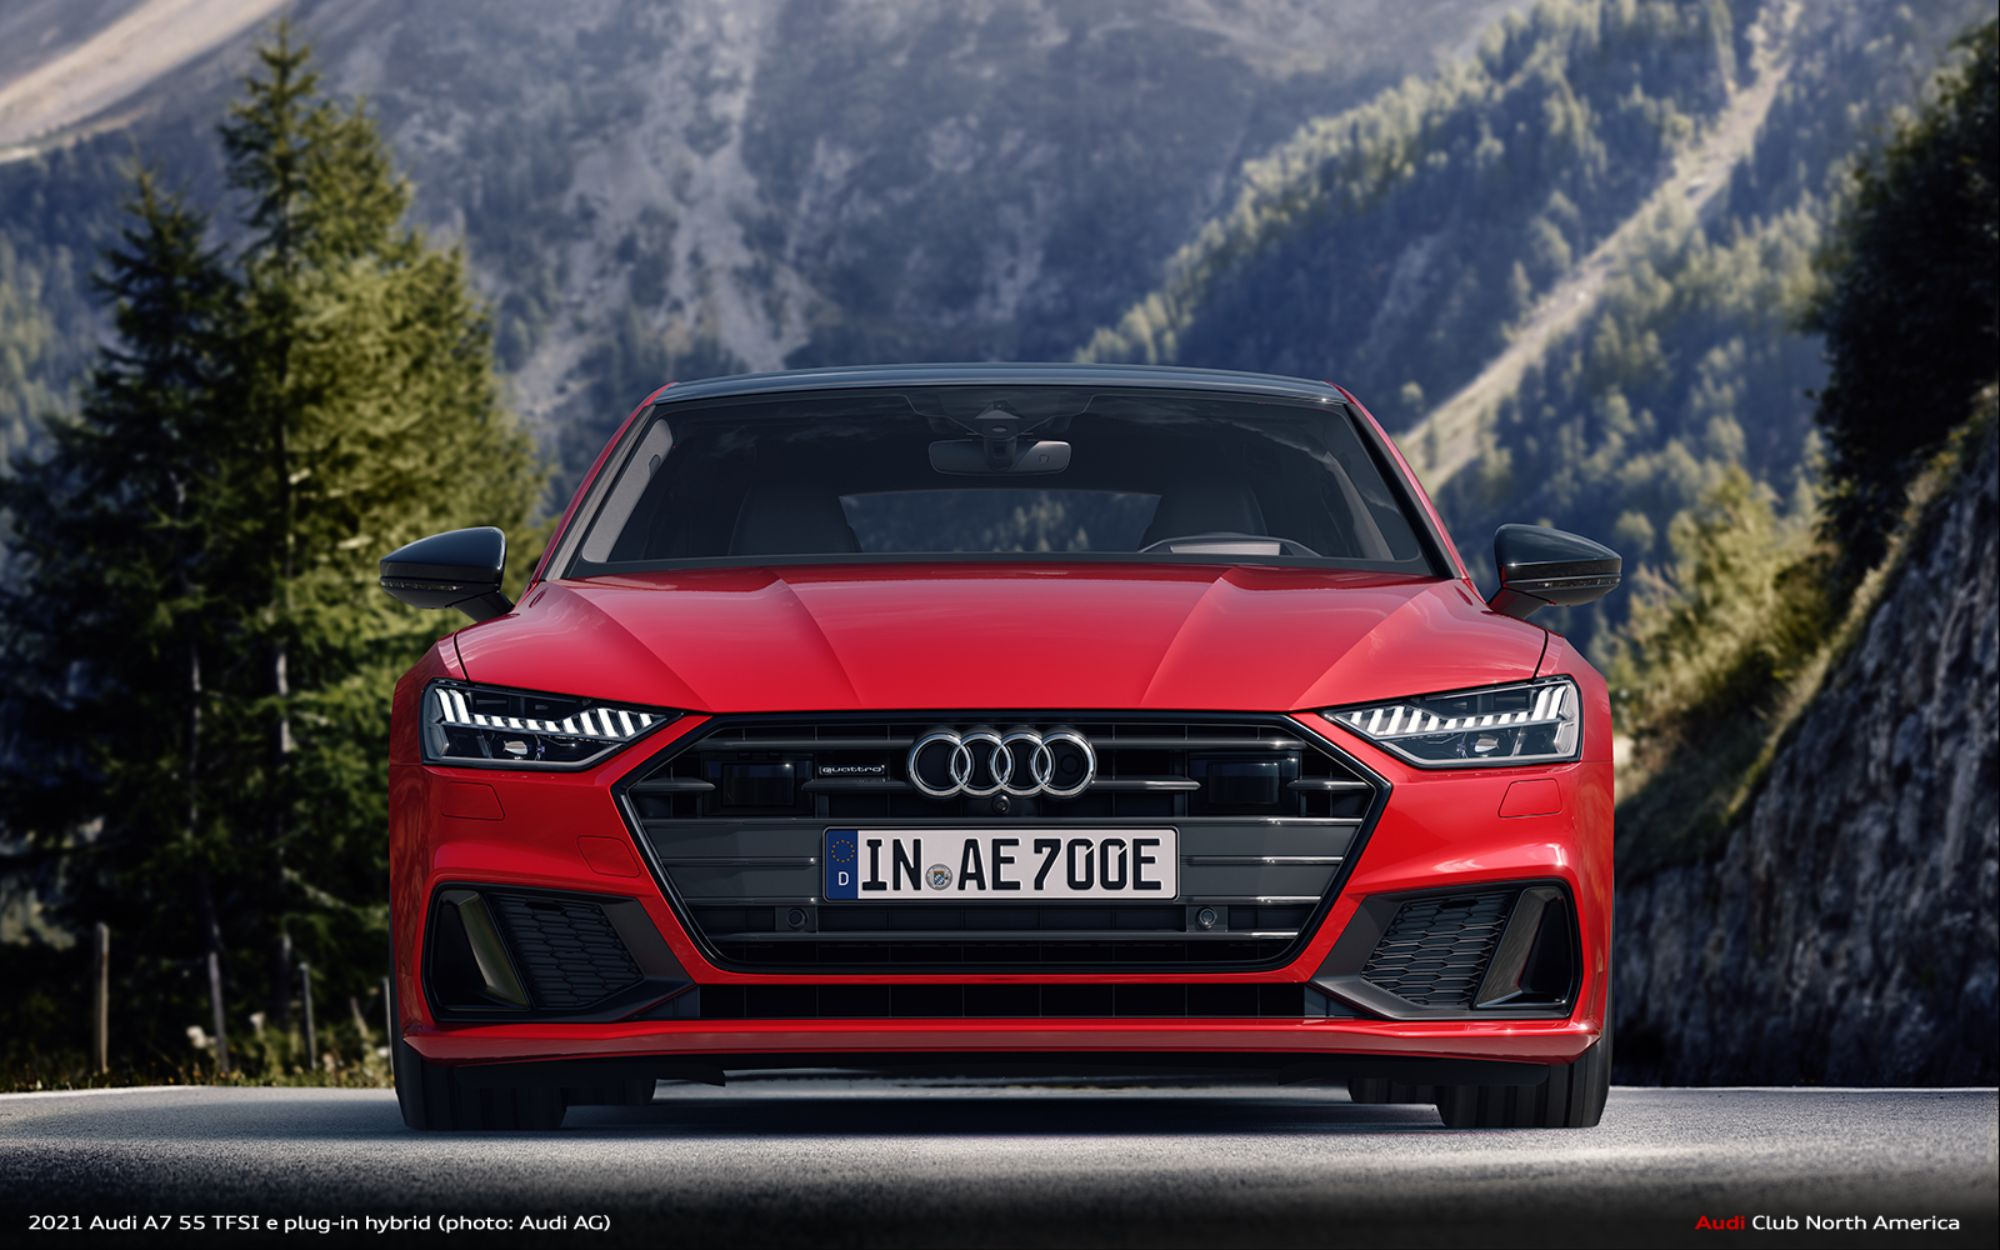 2021 Audi A7 55 TFSI e Plug-In Hybrid Captivates With Electrified Power and Sleek Sportback Design